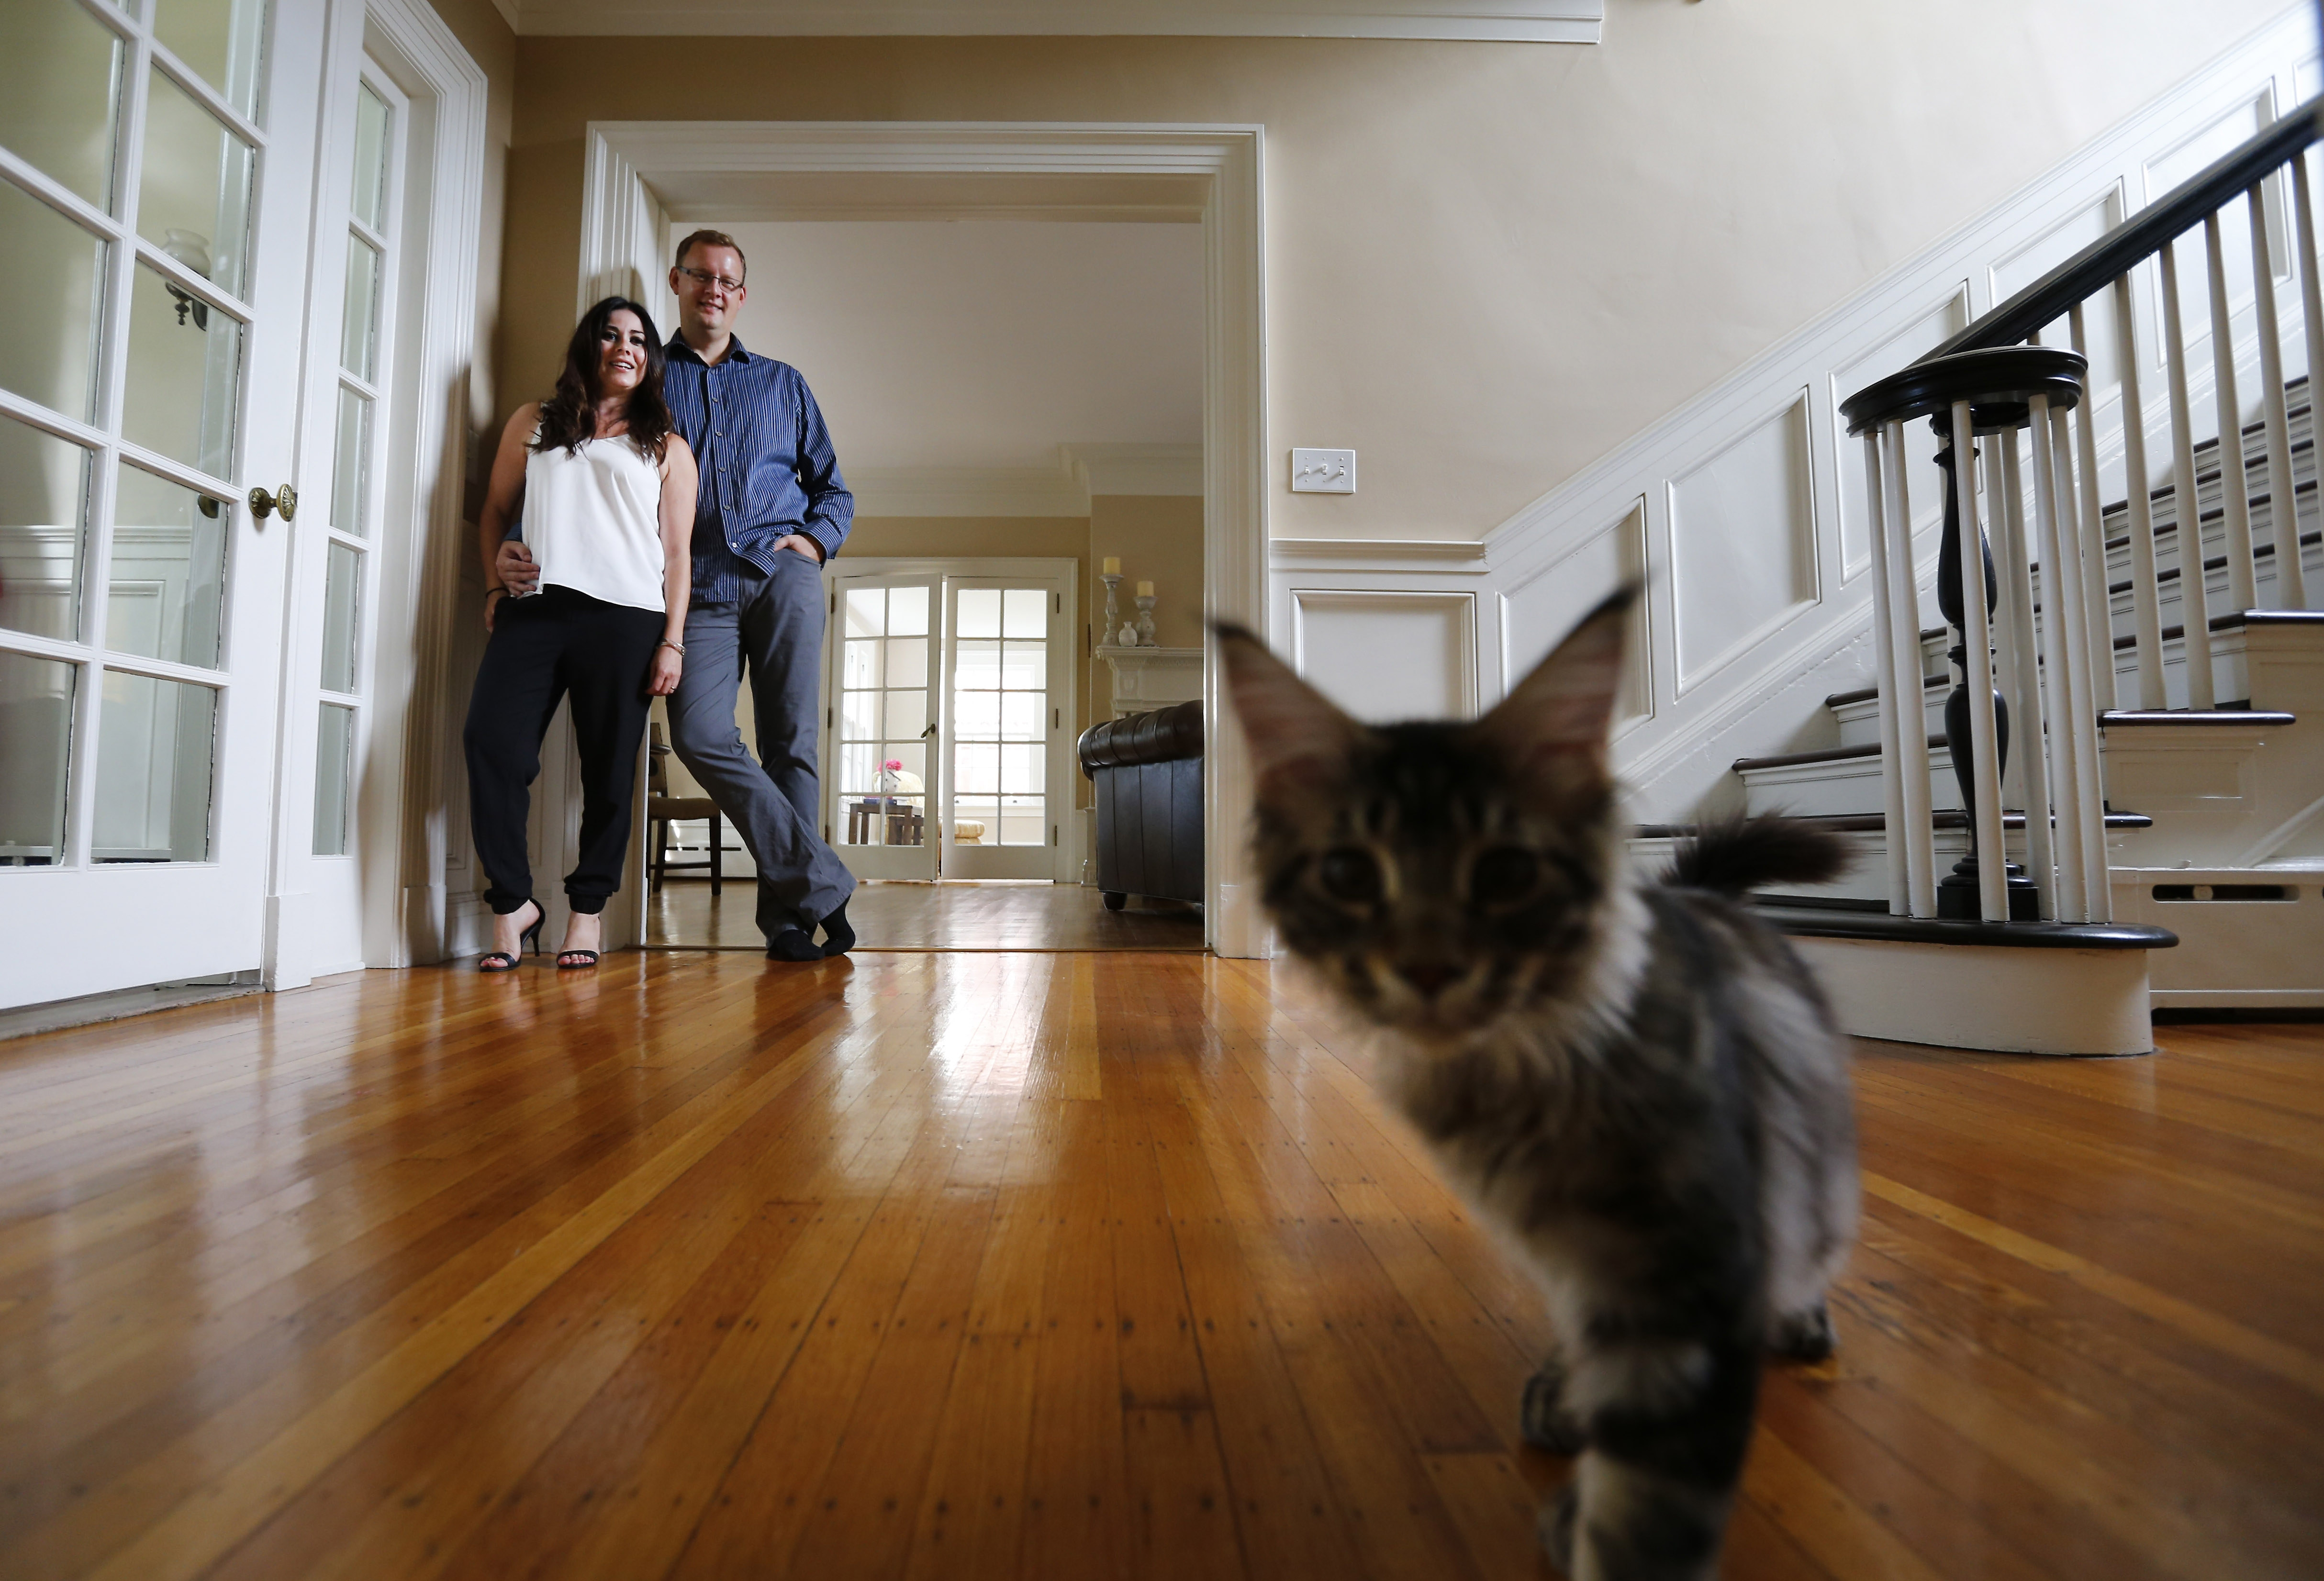 Go with the flow: Dr. Torsten Behrens and Josephine Zagarella pose for a photograph in the foyer of their Central Park home as Loki, one of their three Maine Coons, steals the show. Redecorated spaces include the breakfast room, above left, and one of two guest rooms. The home is on Explore Buffalo's Autumn Tour of Homes on Sept. 23.